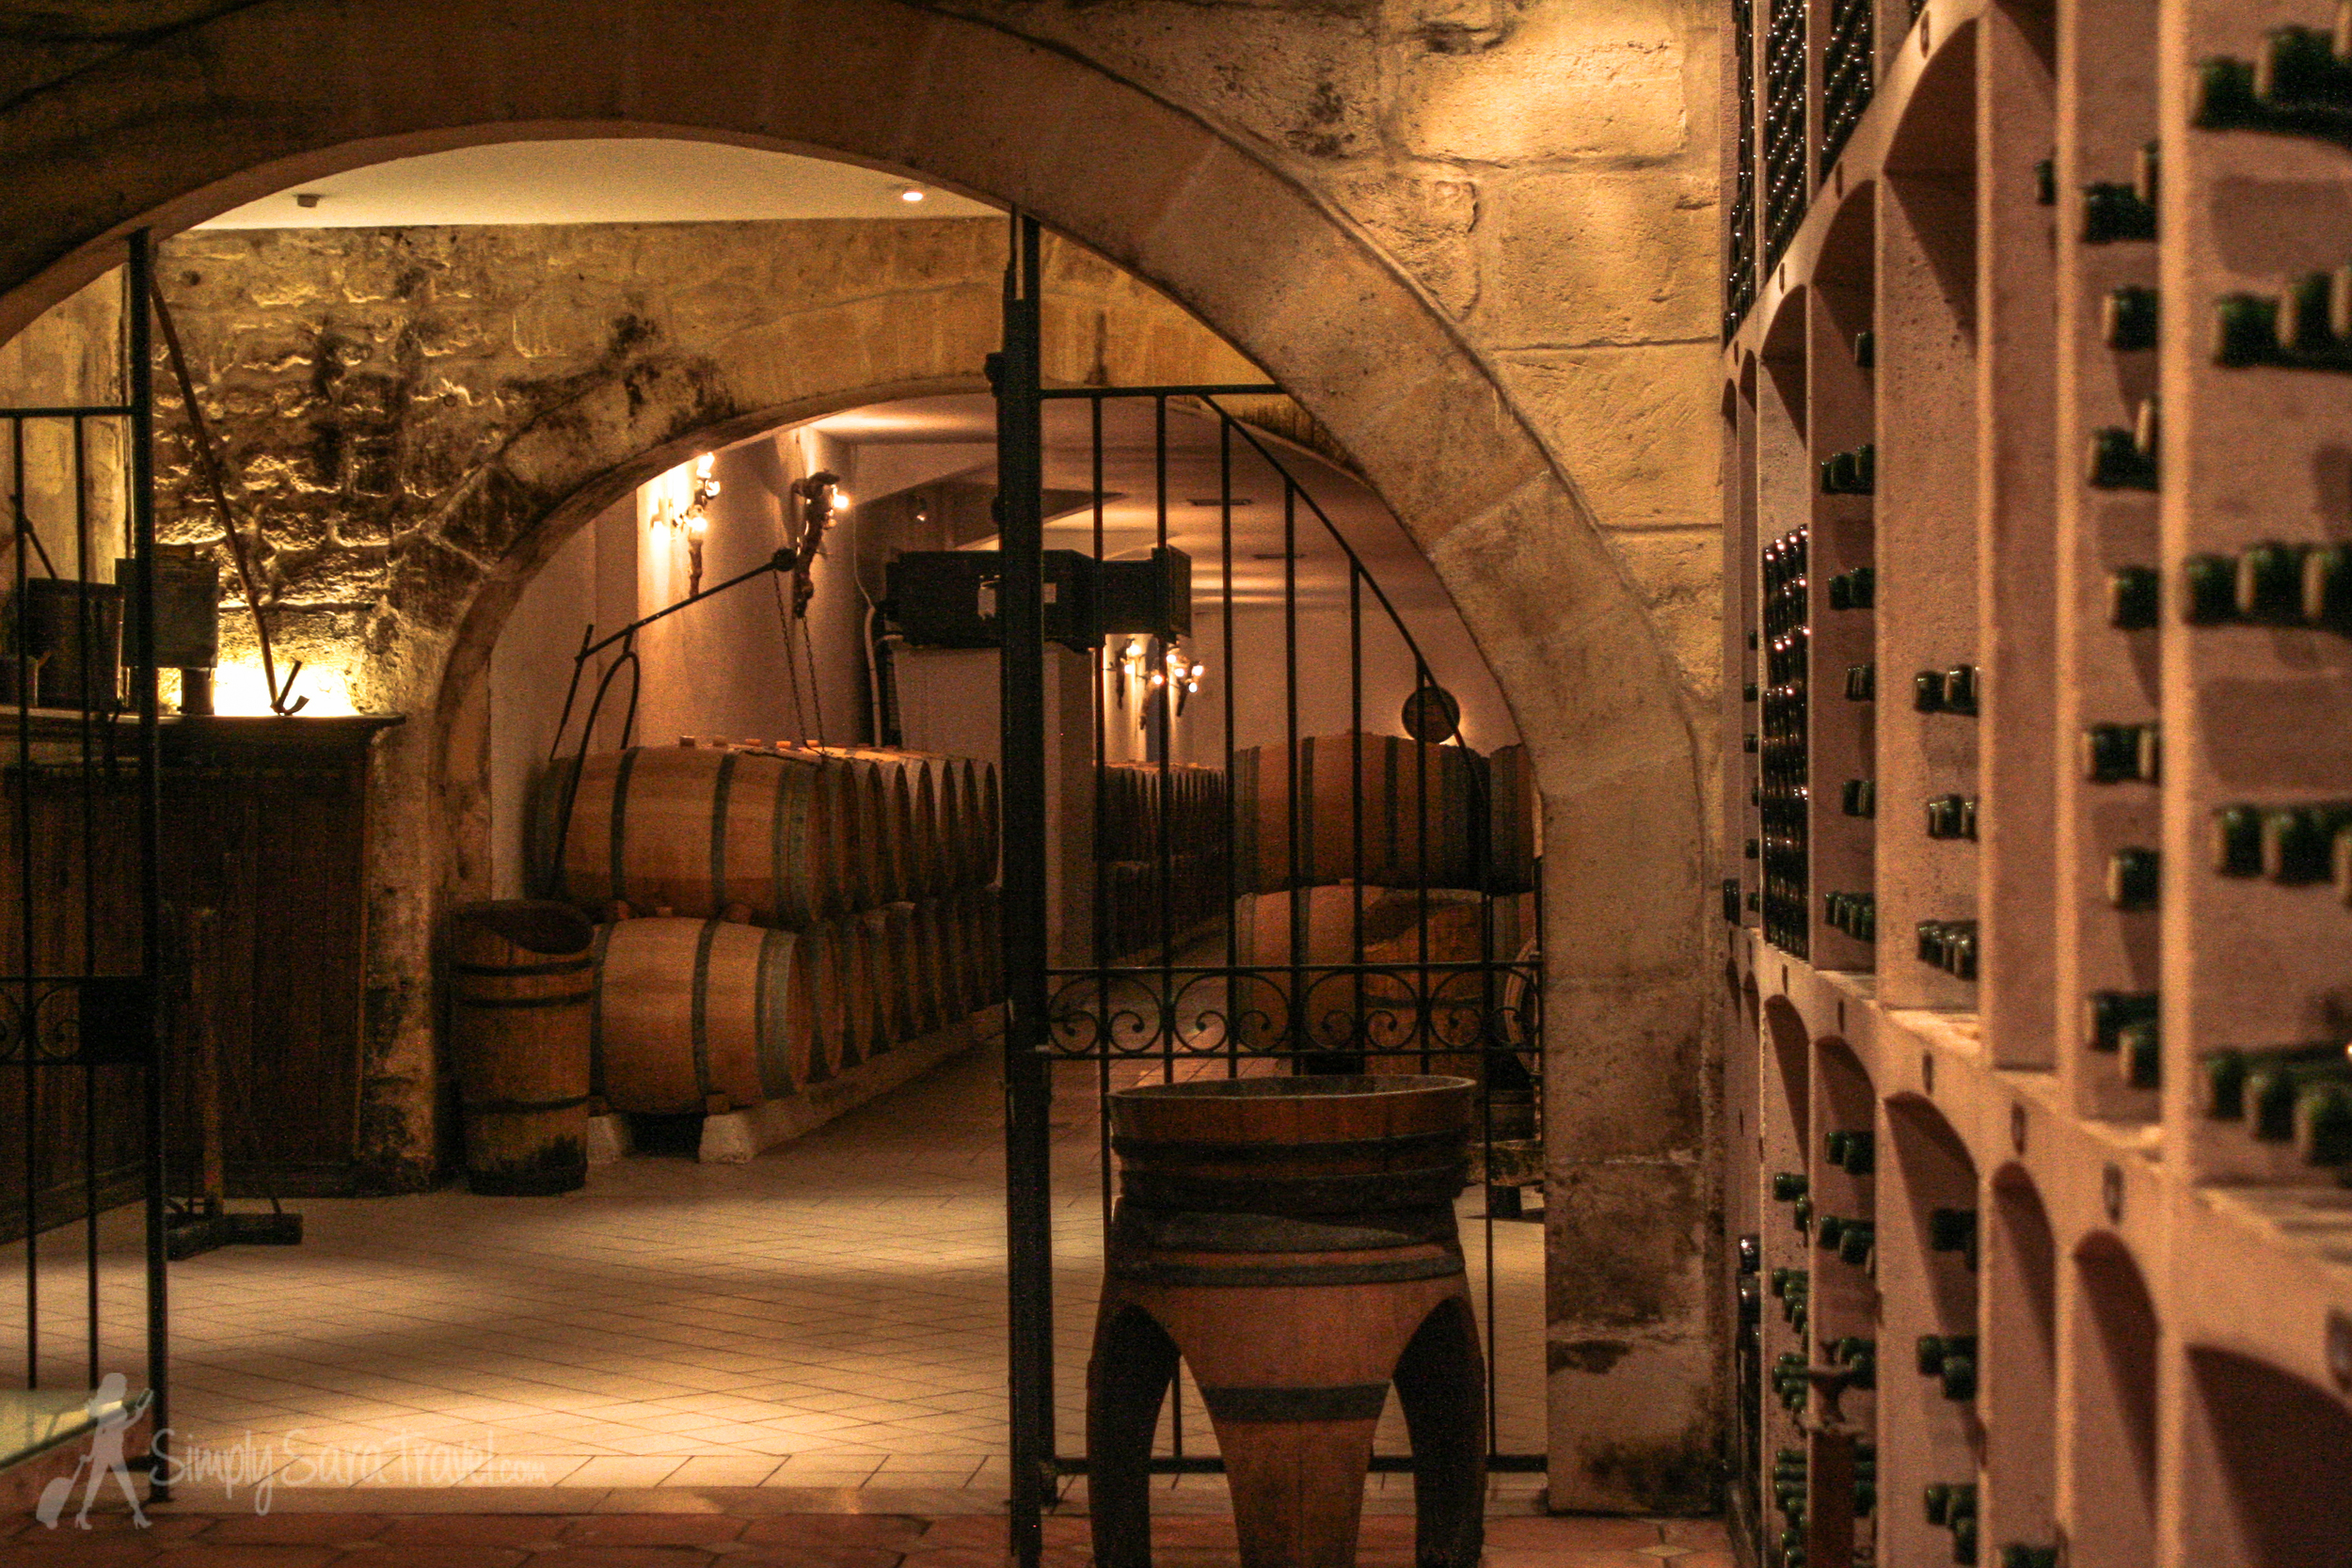 Down in the cellars